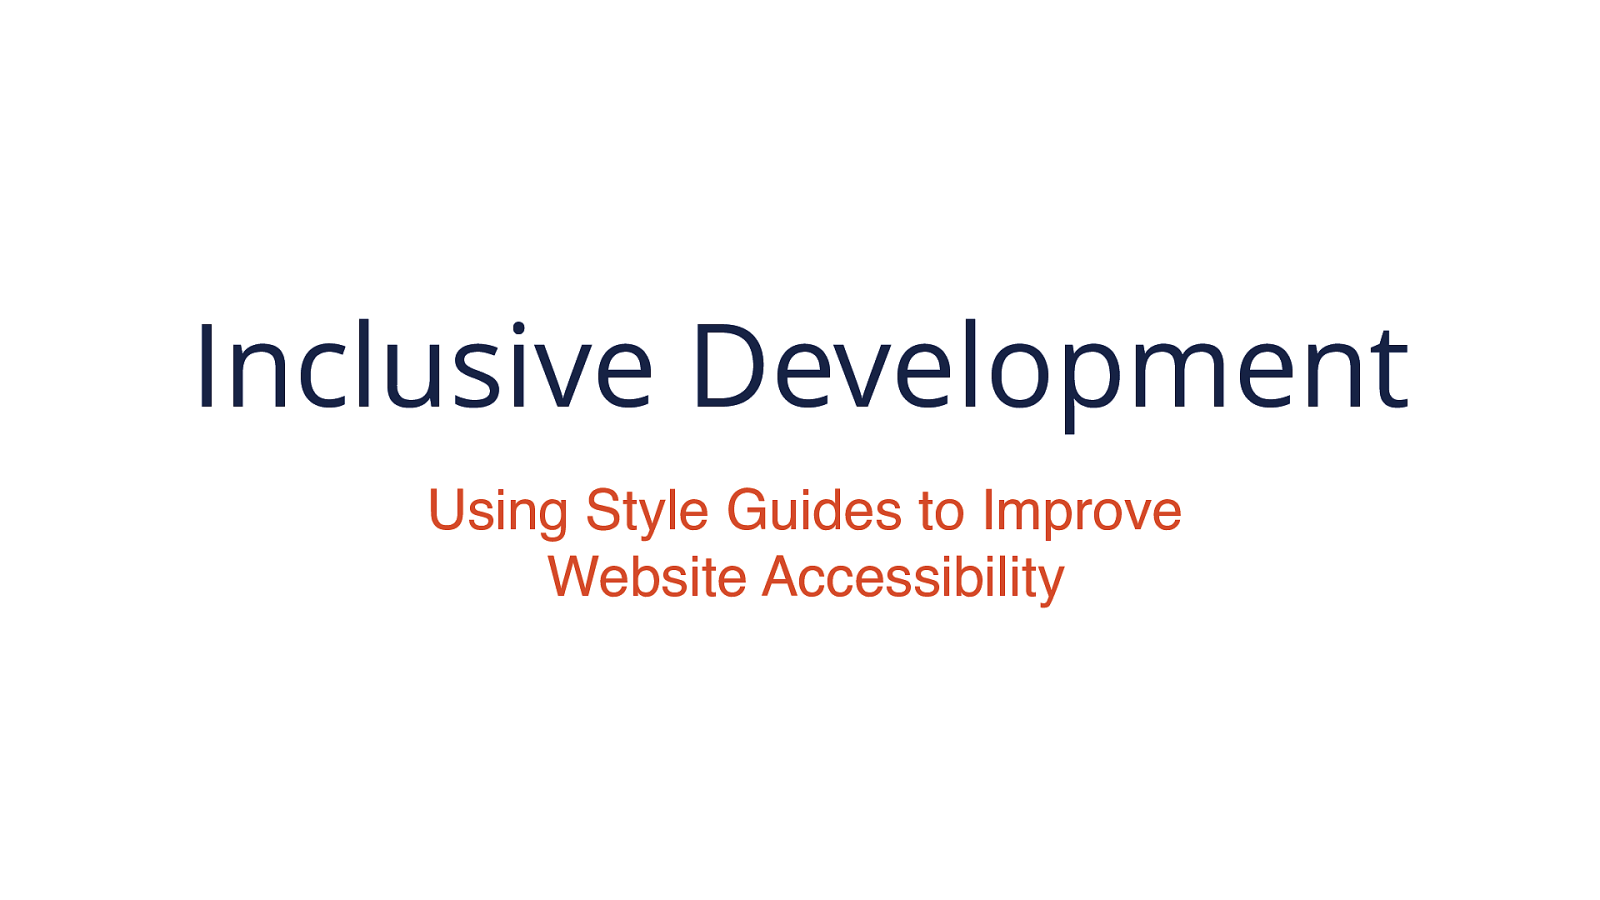 Inclusive Development: Using Style Guides to Improve Website Accessibility